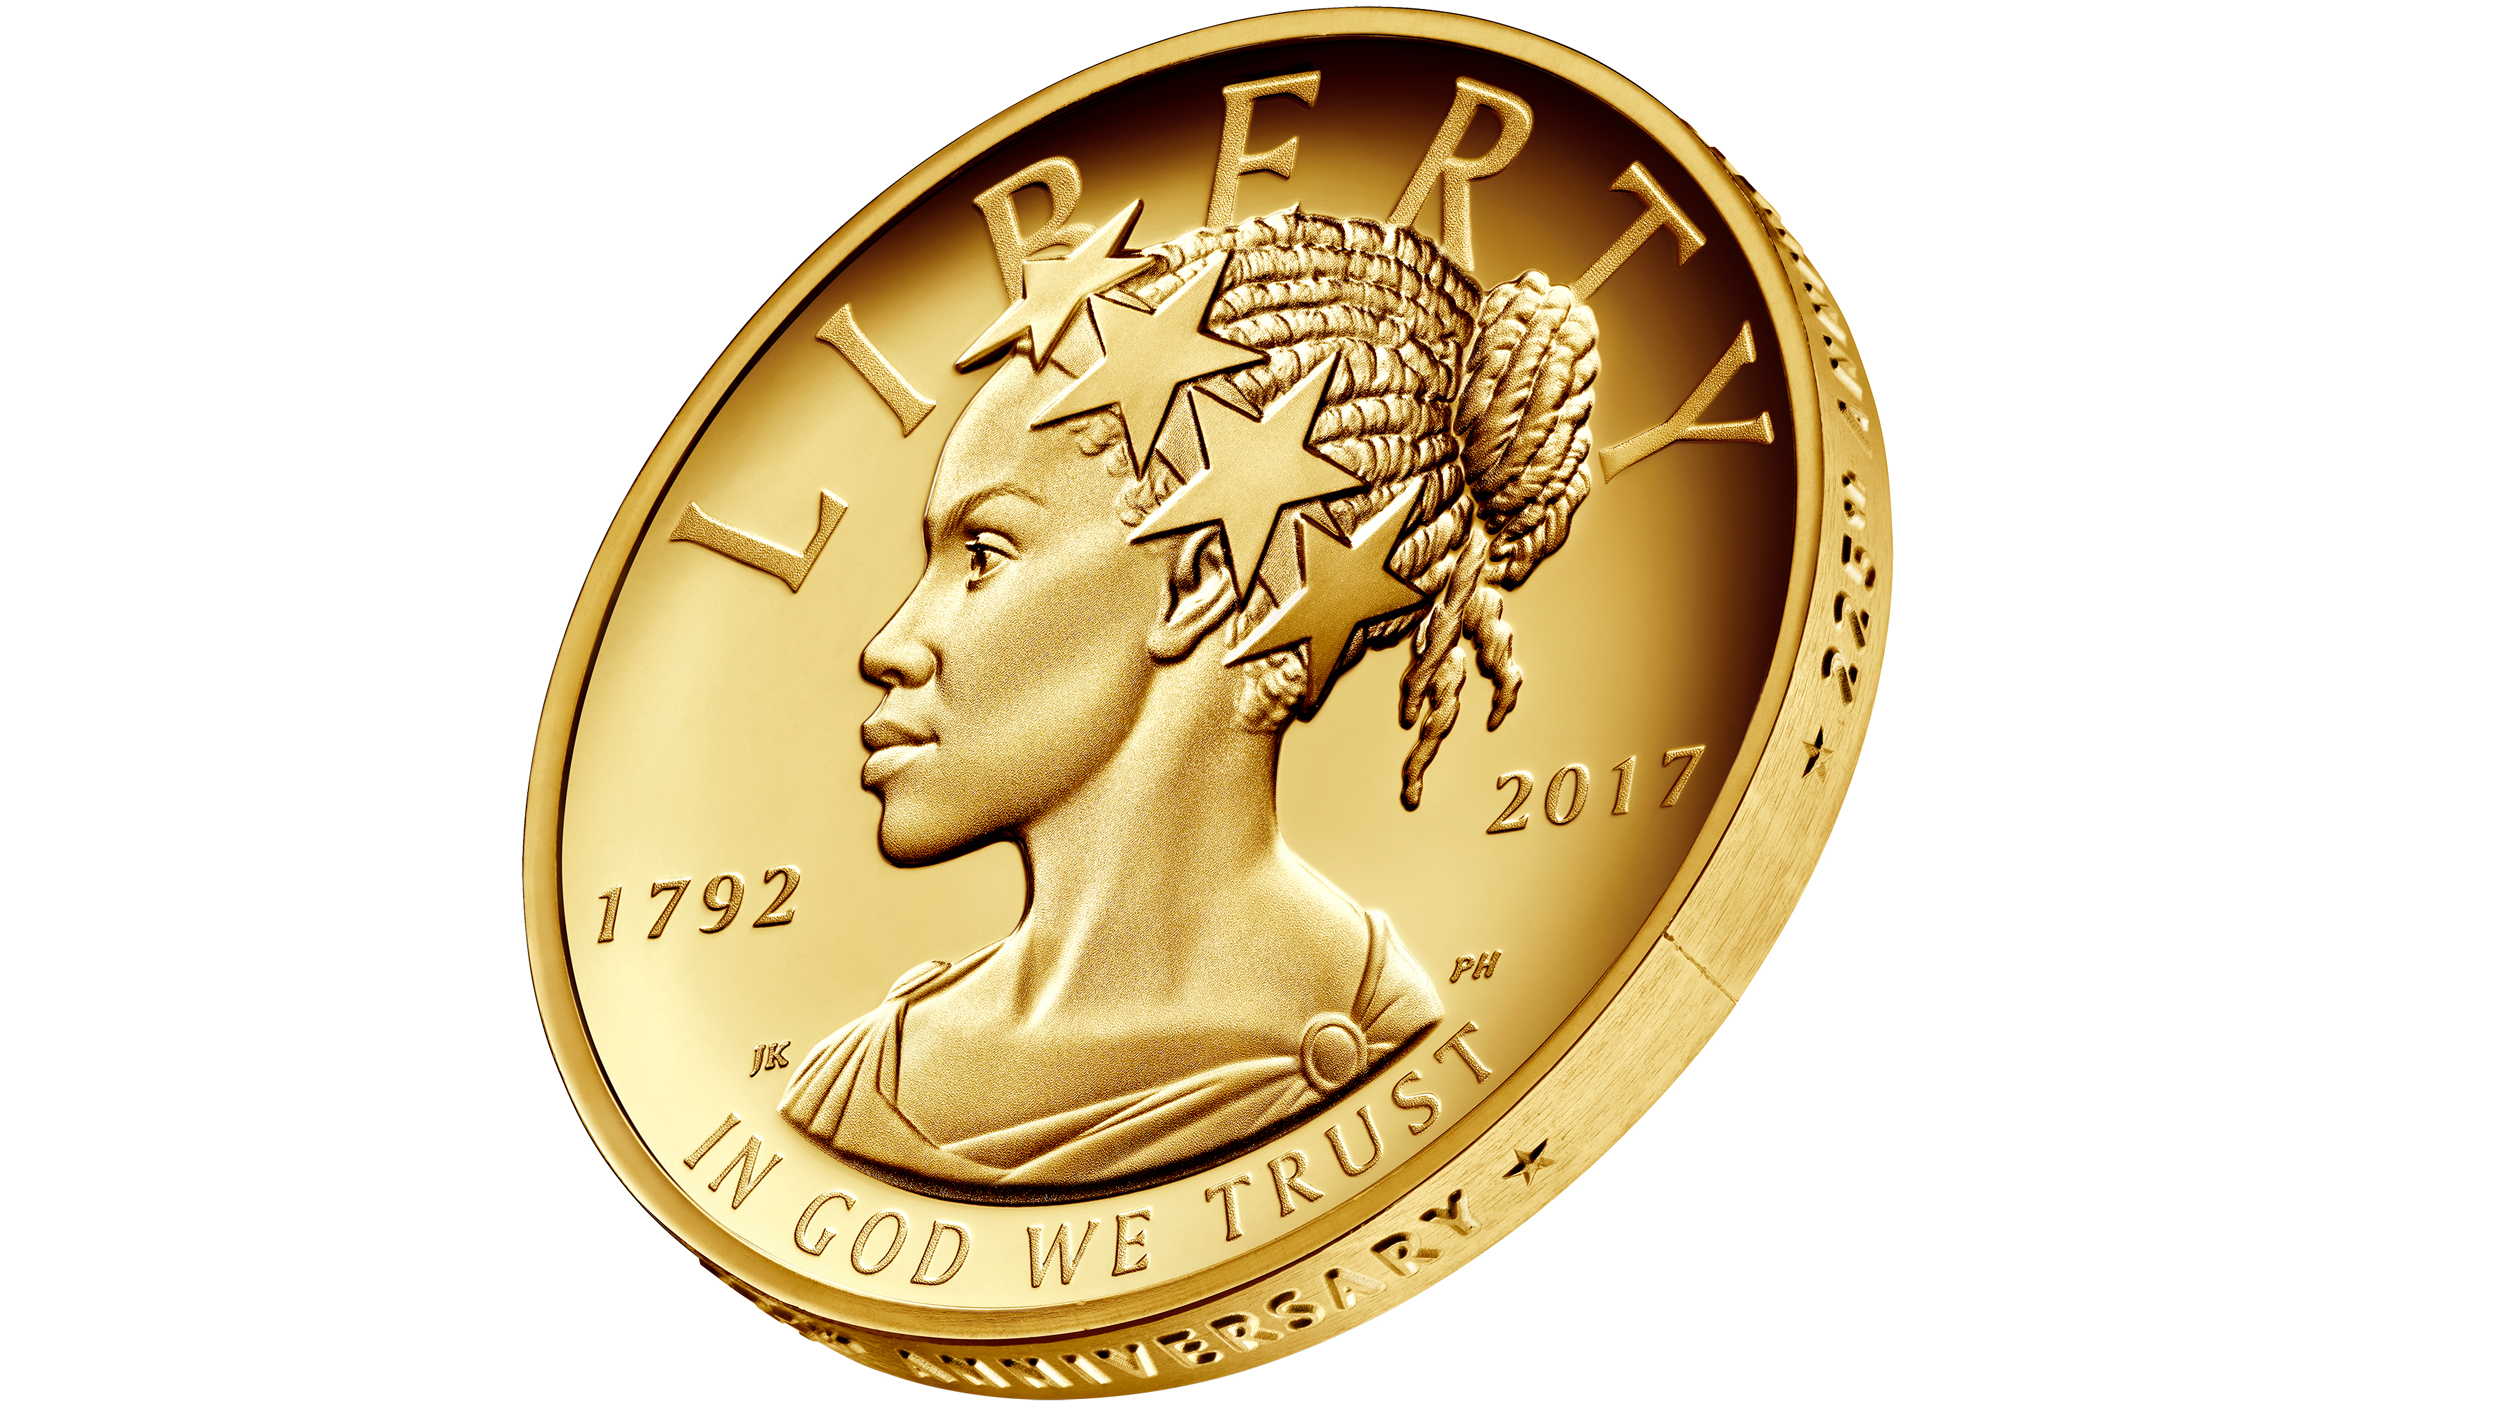 2017-american-liberty-225th-anniversary-gold-coin-obverse-side-angle